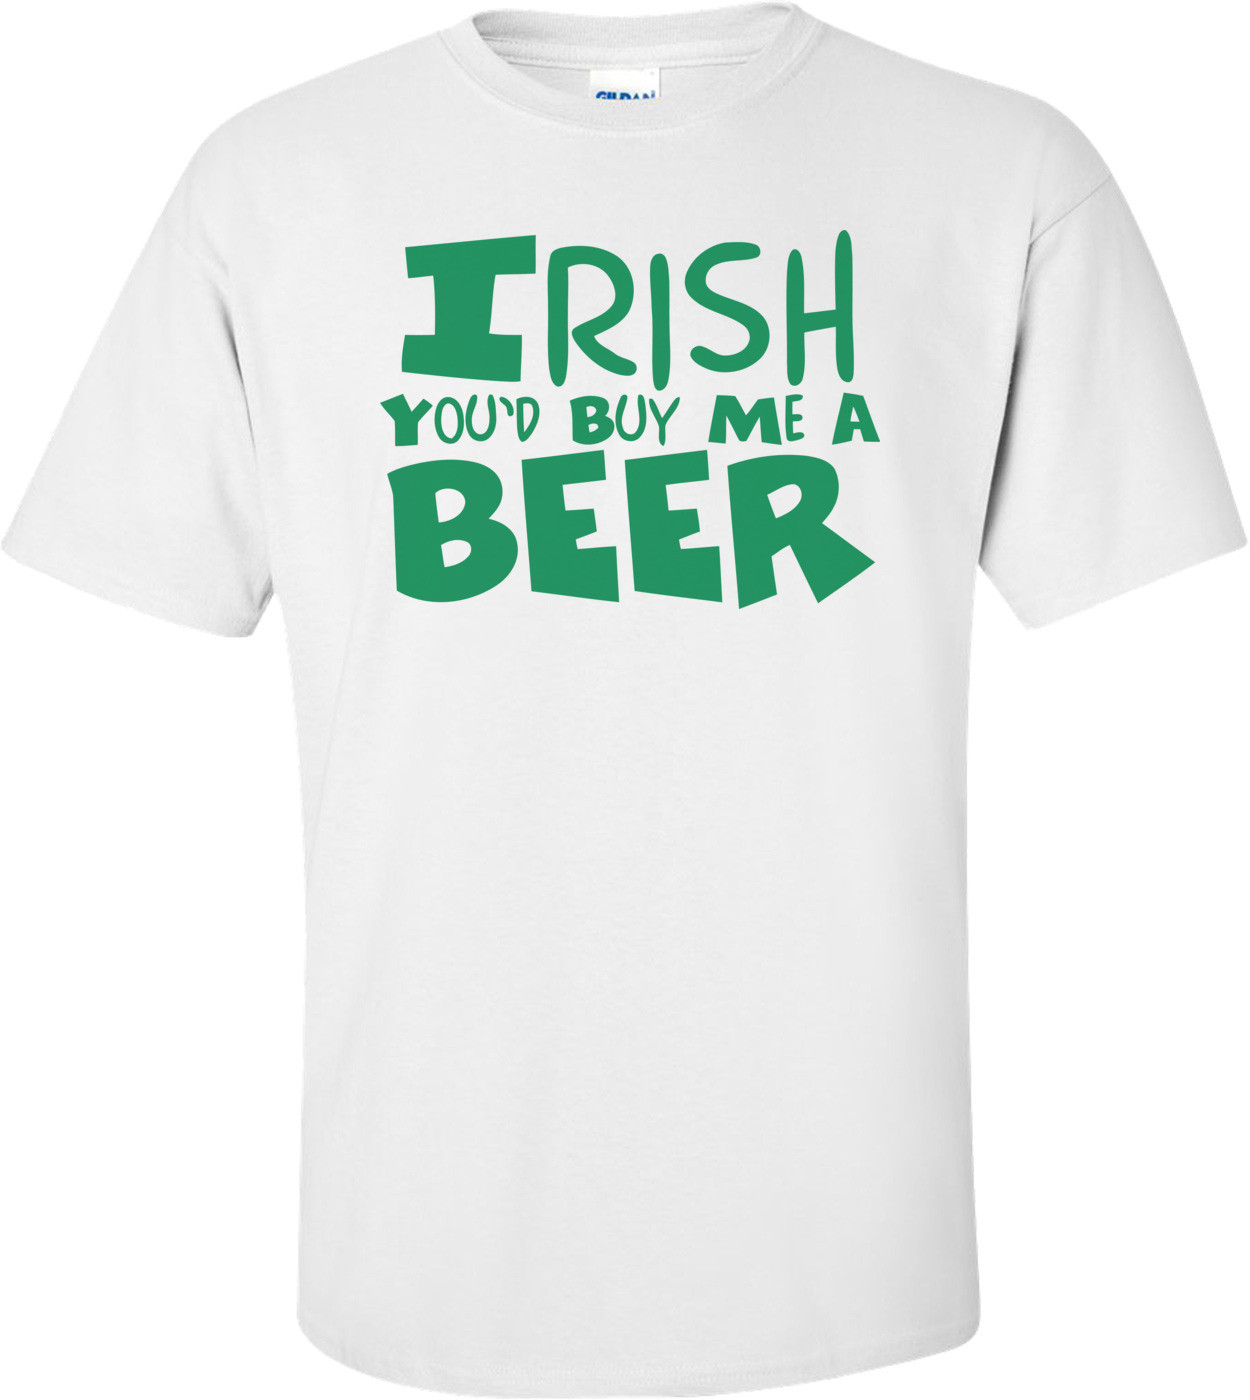 Irish You'd Buy Me A Beer St. Paddy's Day T-shirt